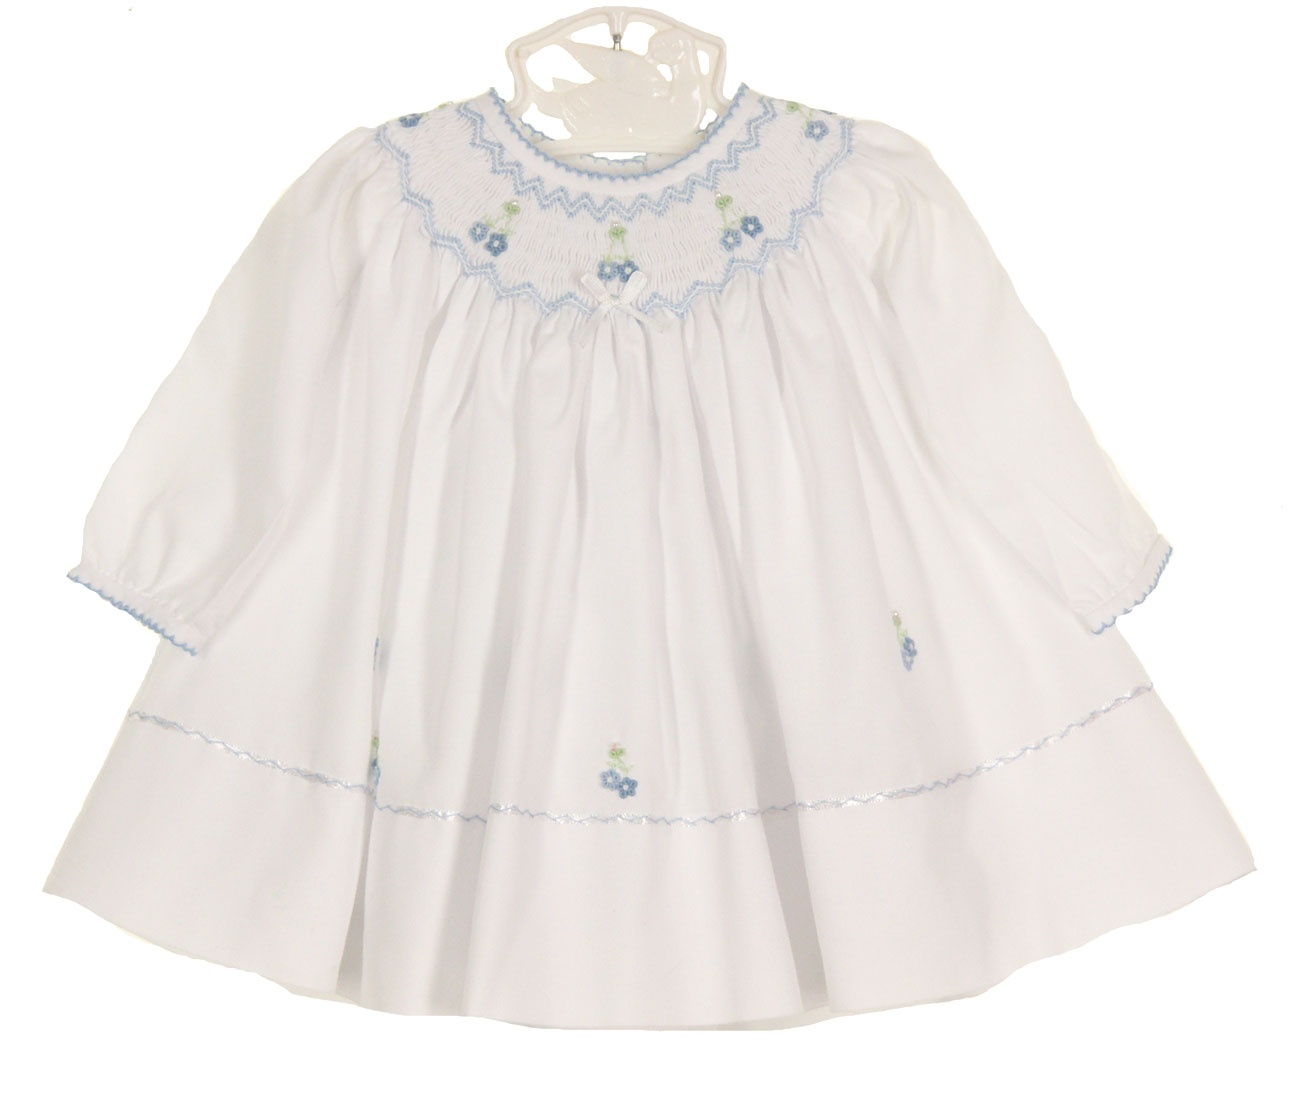 Sarah Louise white bishop smocked dress with blue flowers